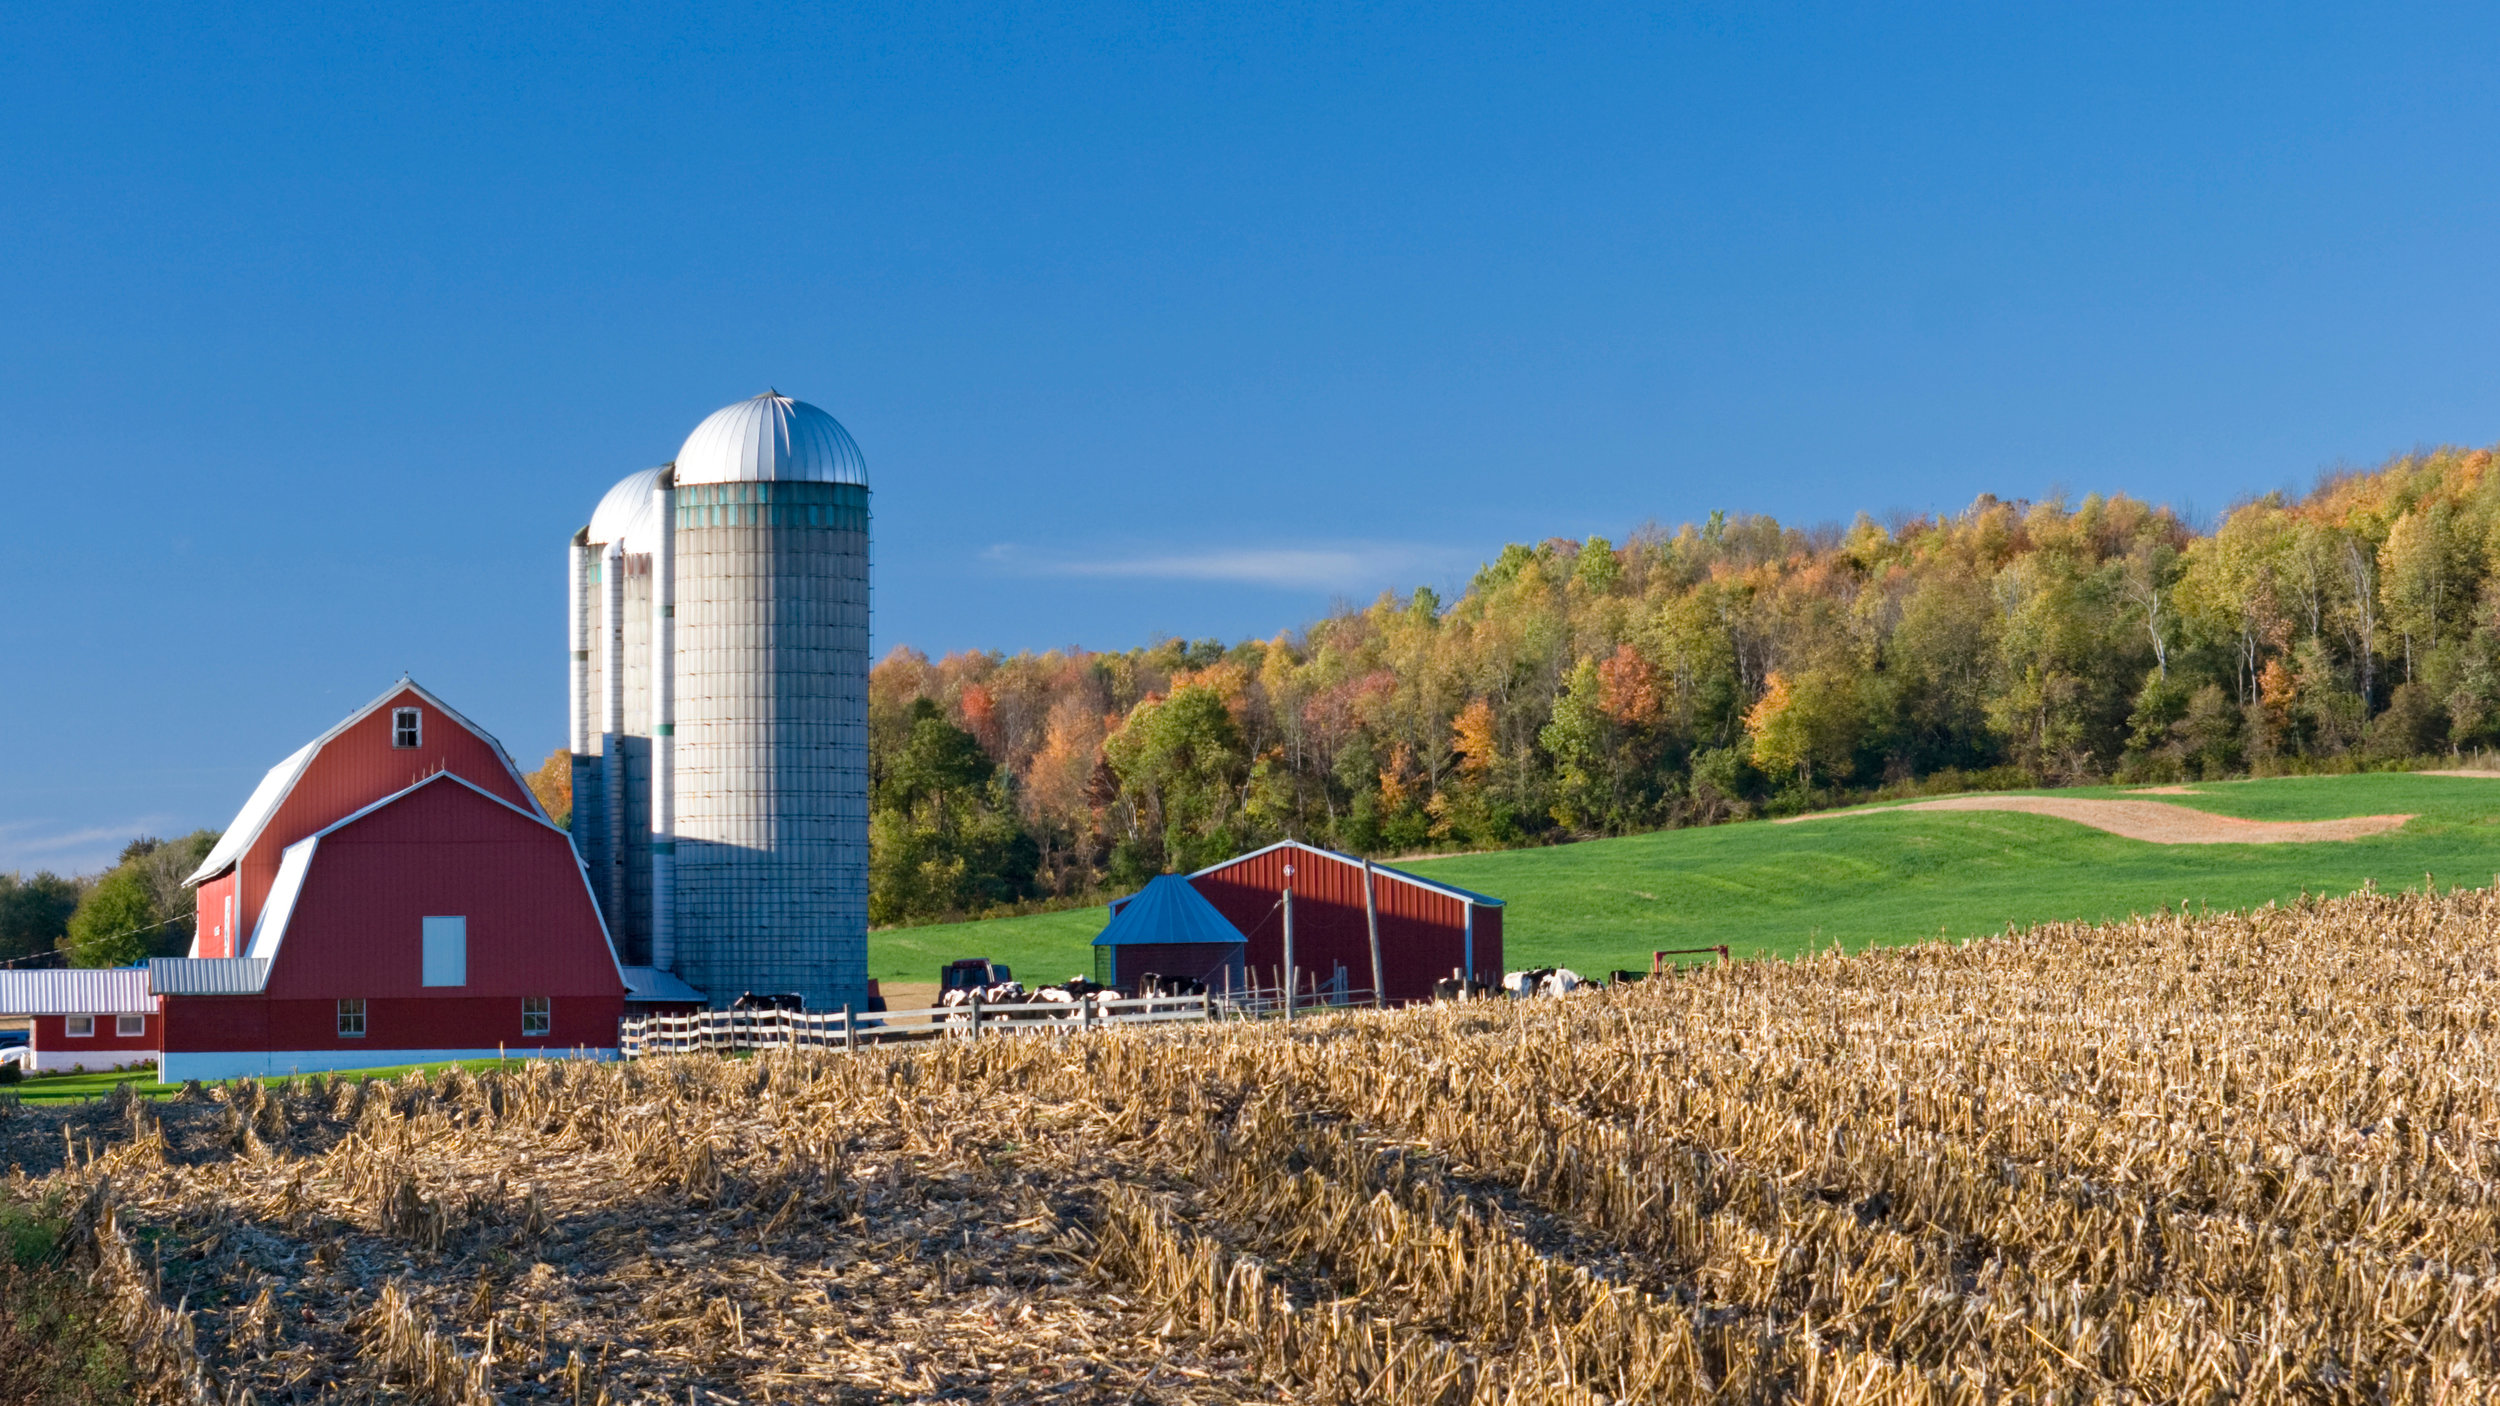 Image of dairy farm with red barn. Image by USDA